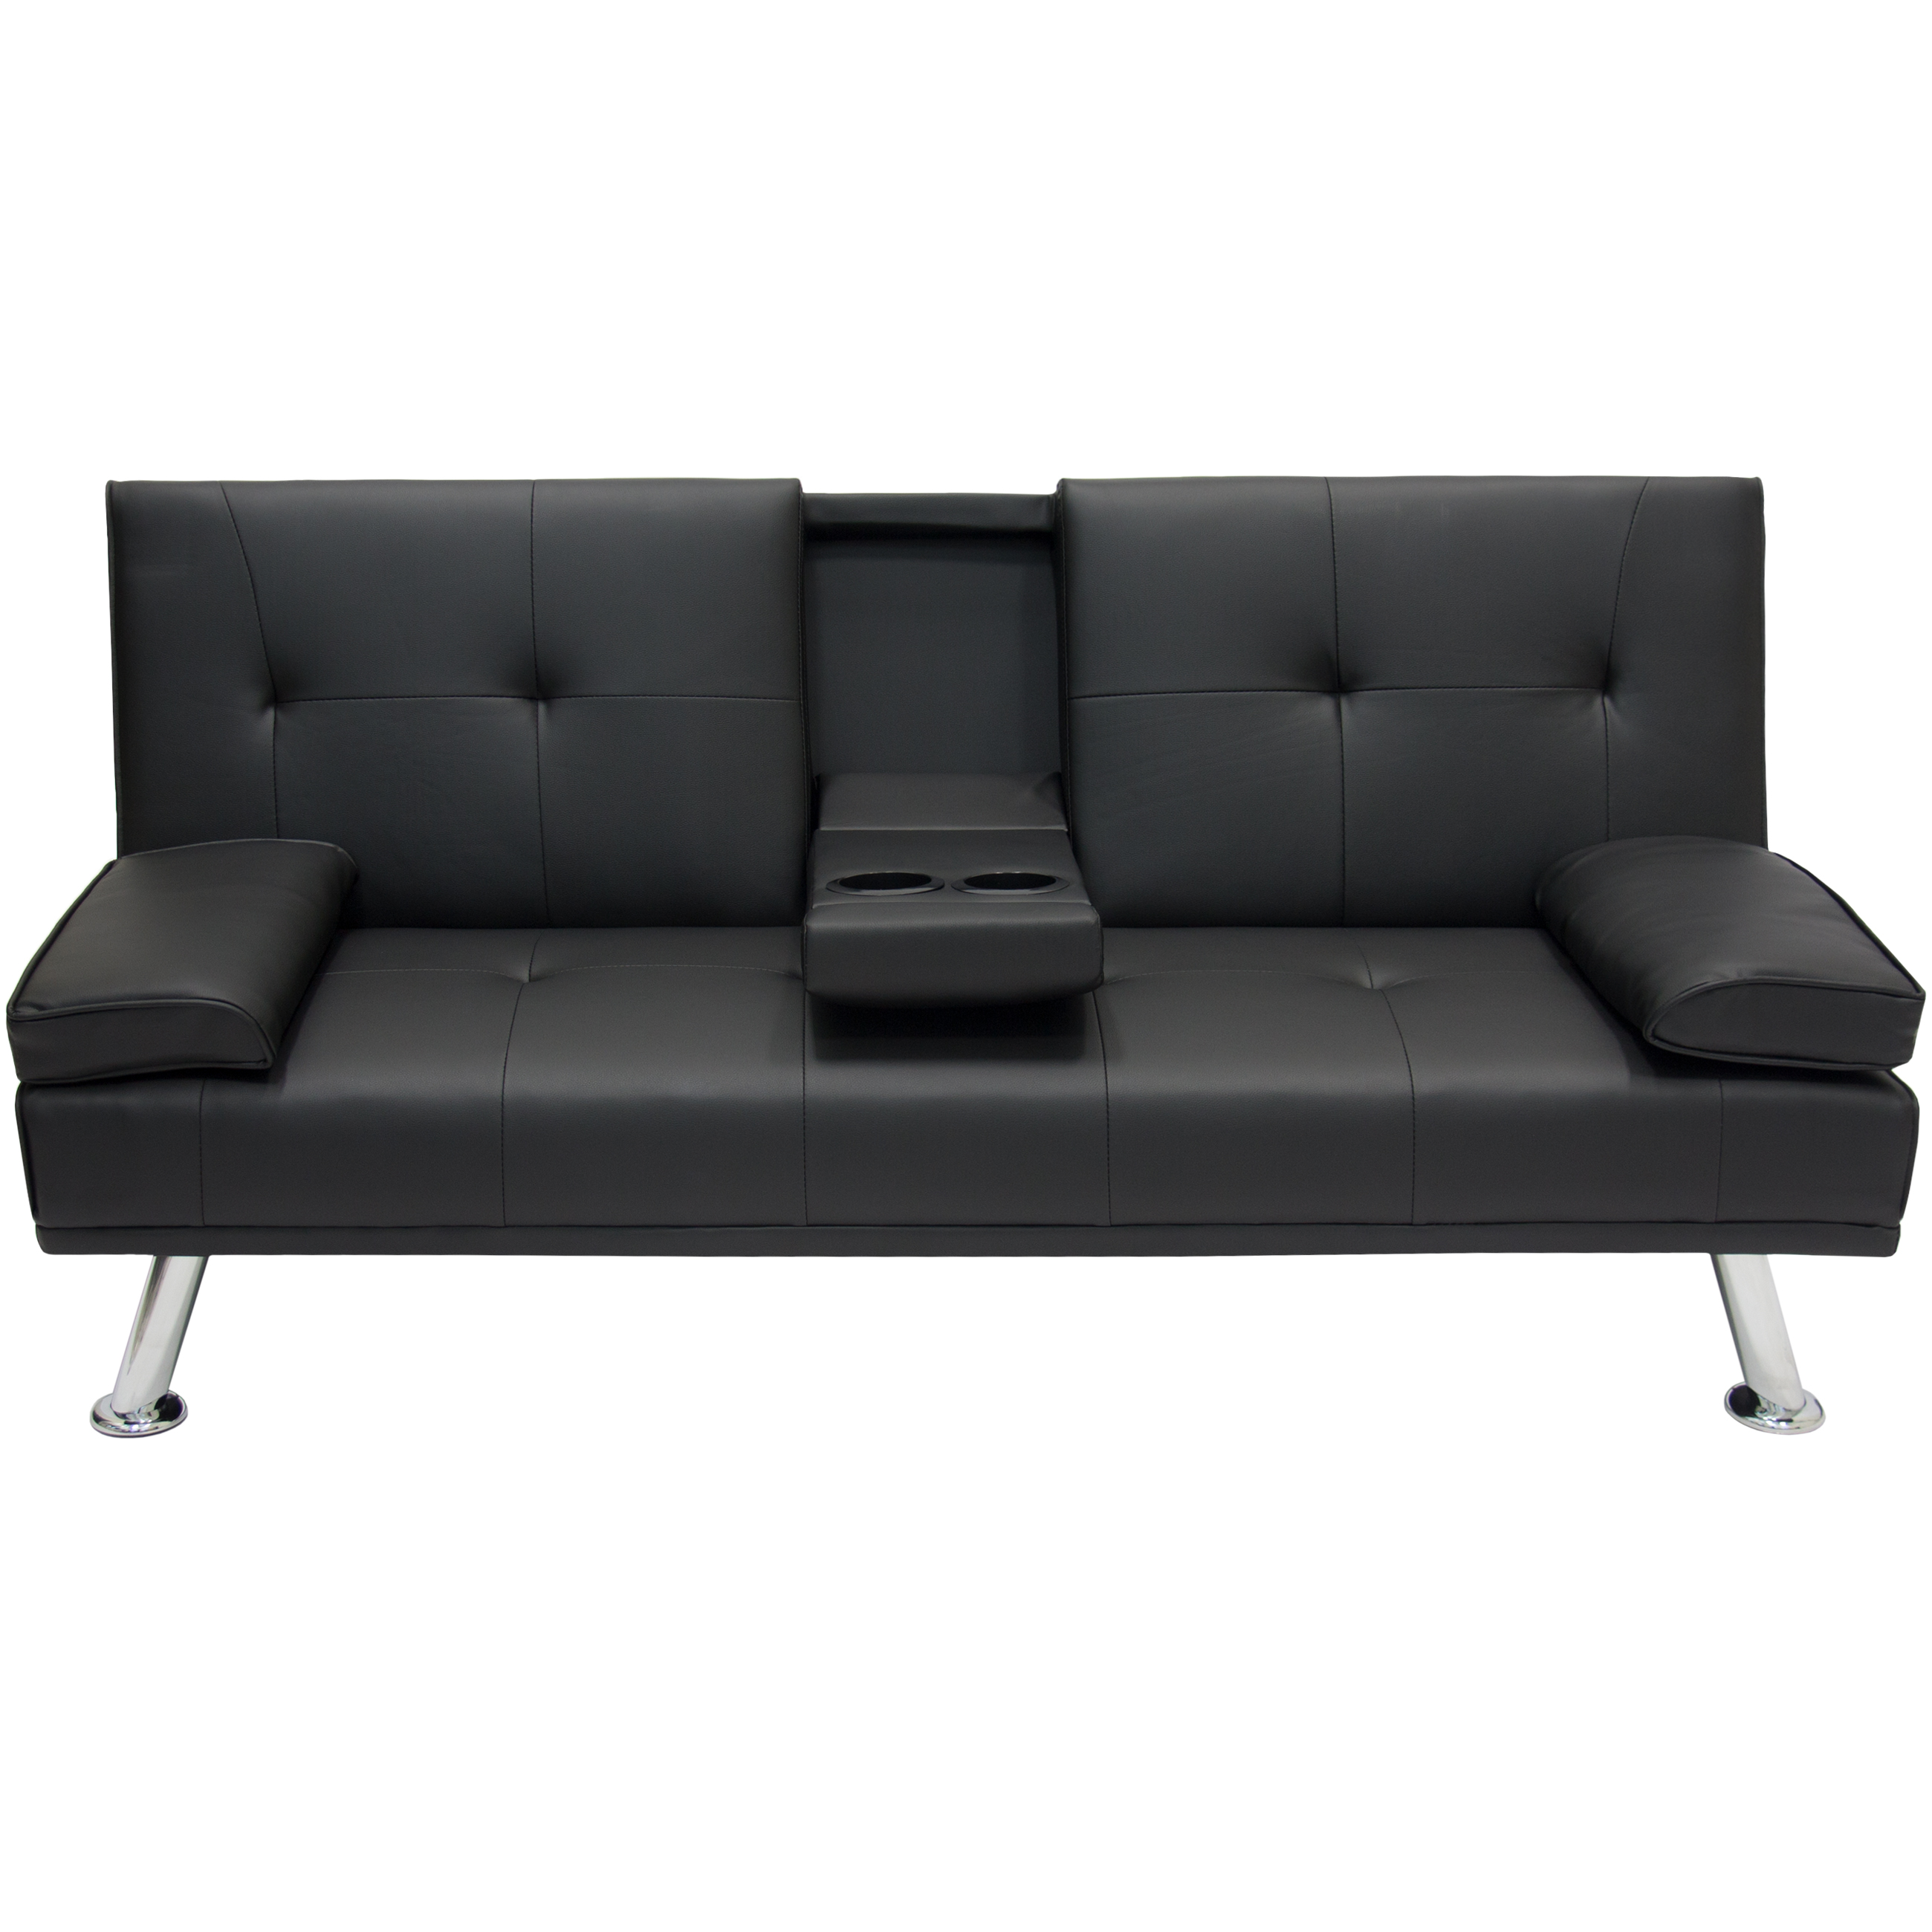 Best Choice Products Modern Entertainment Futon Sofa Bed Fold Up & Down Recliner Couch With Cup Holders Furniture by